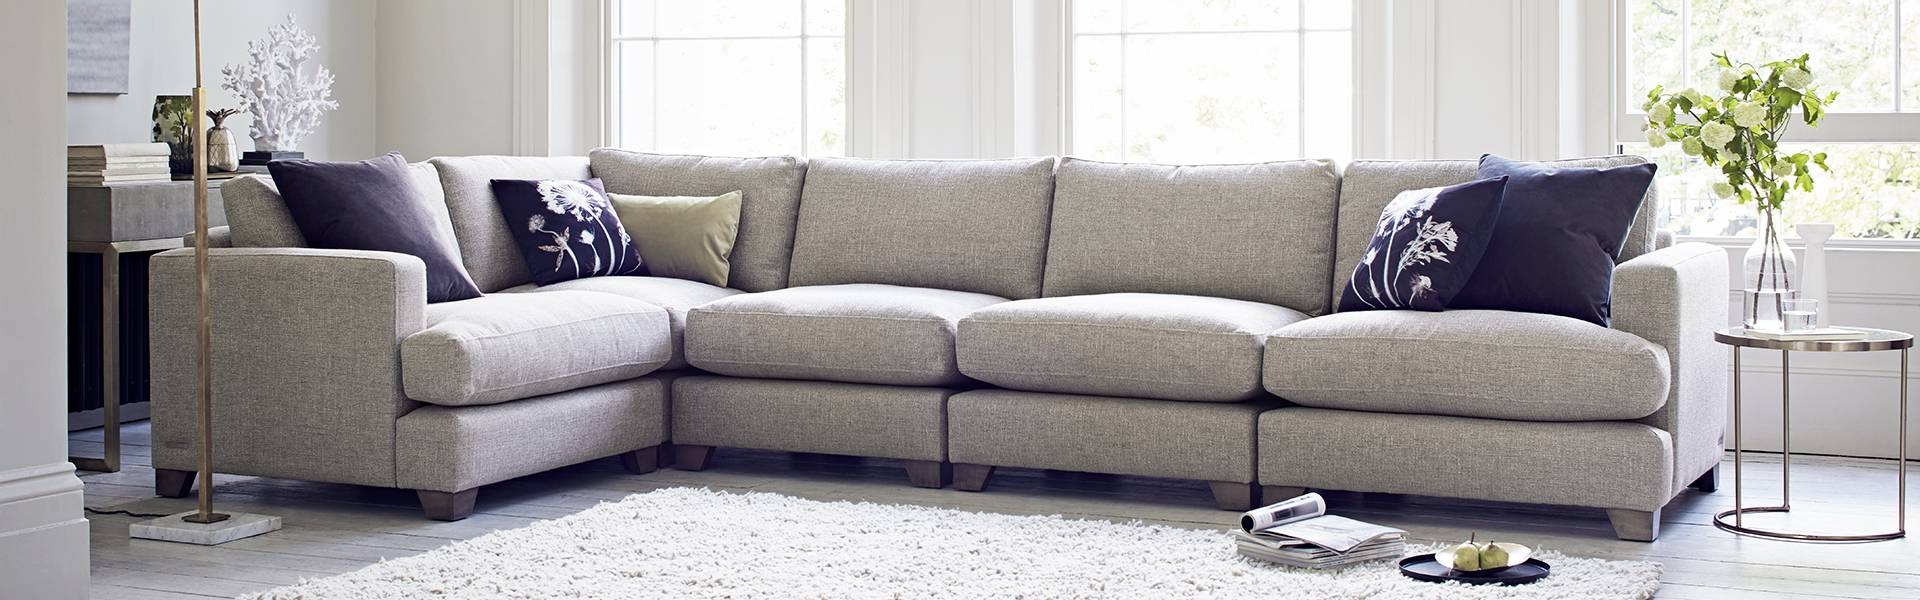 A Sofa Fit For The Family for Family Sofa (Image 2 of 30)